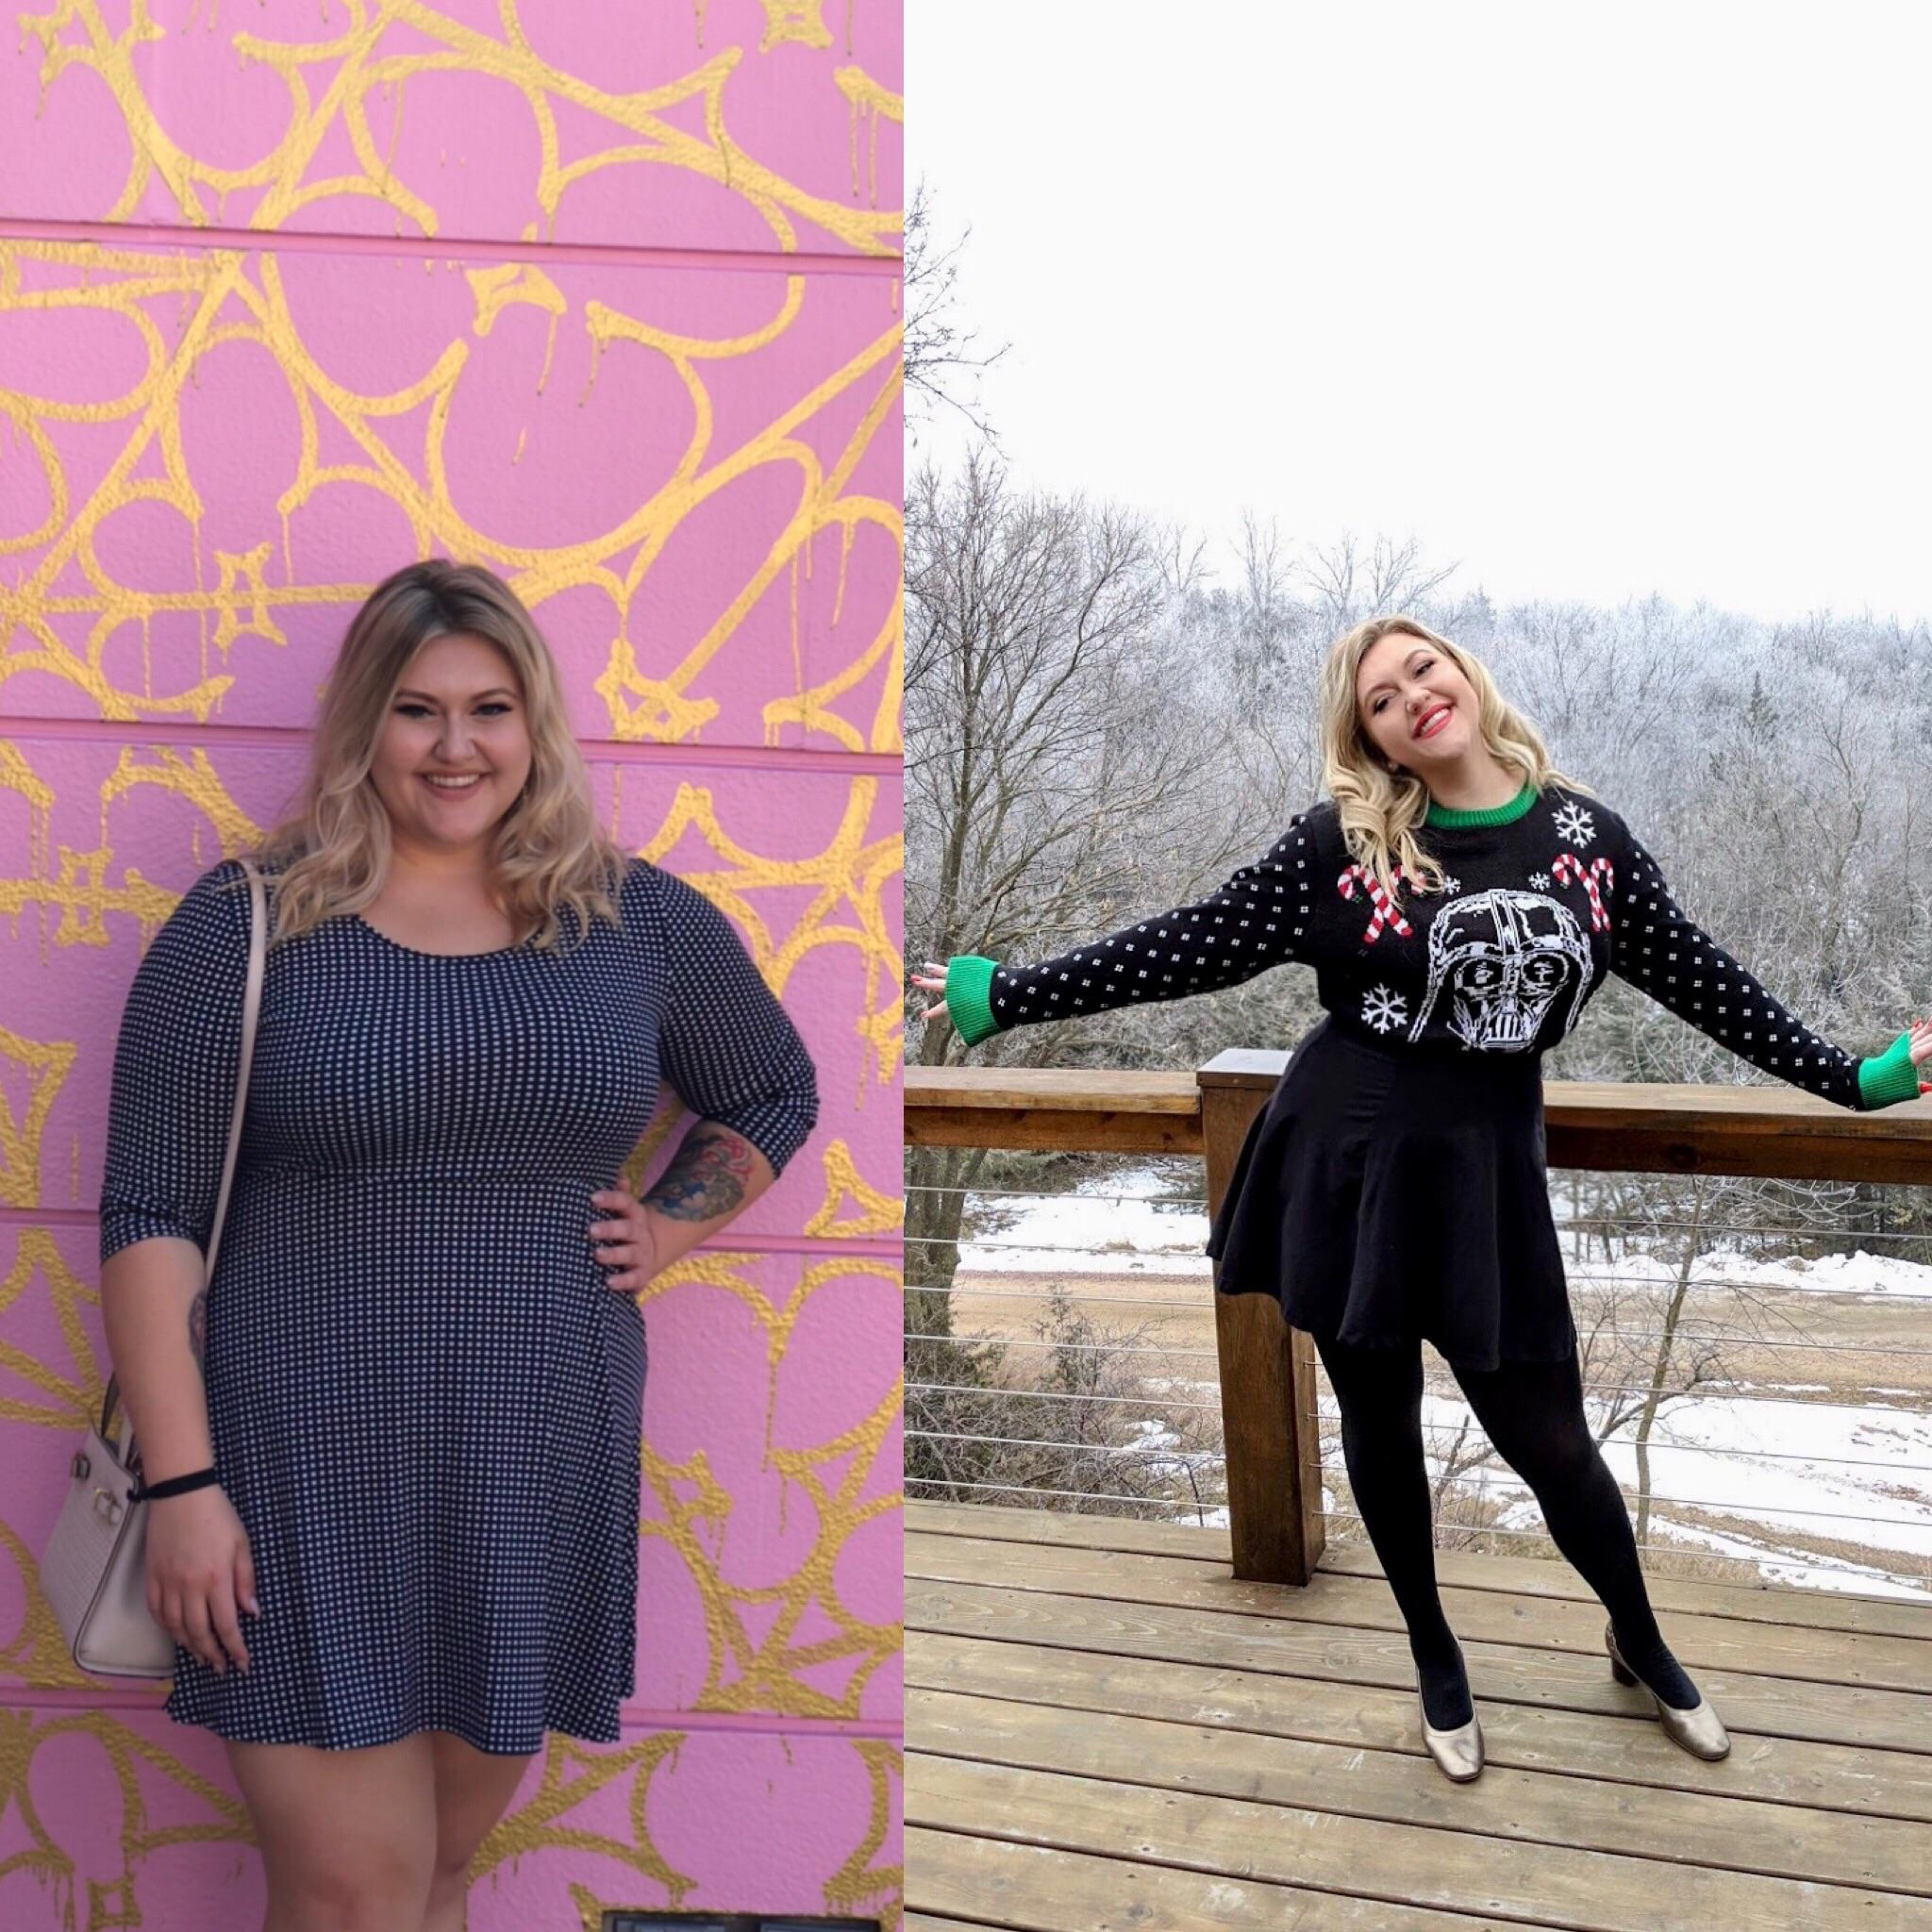 70 lbs Fat Loss Before and After 5 foot 7 Female 250 lbs to 180 lbs